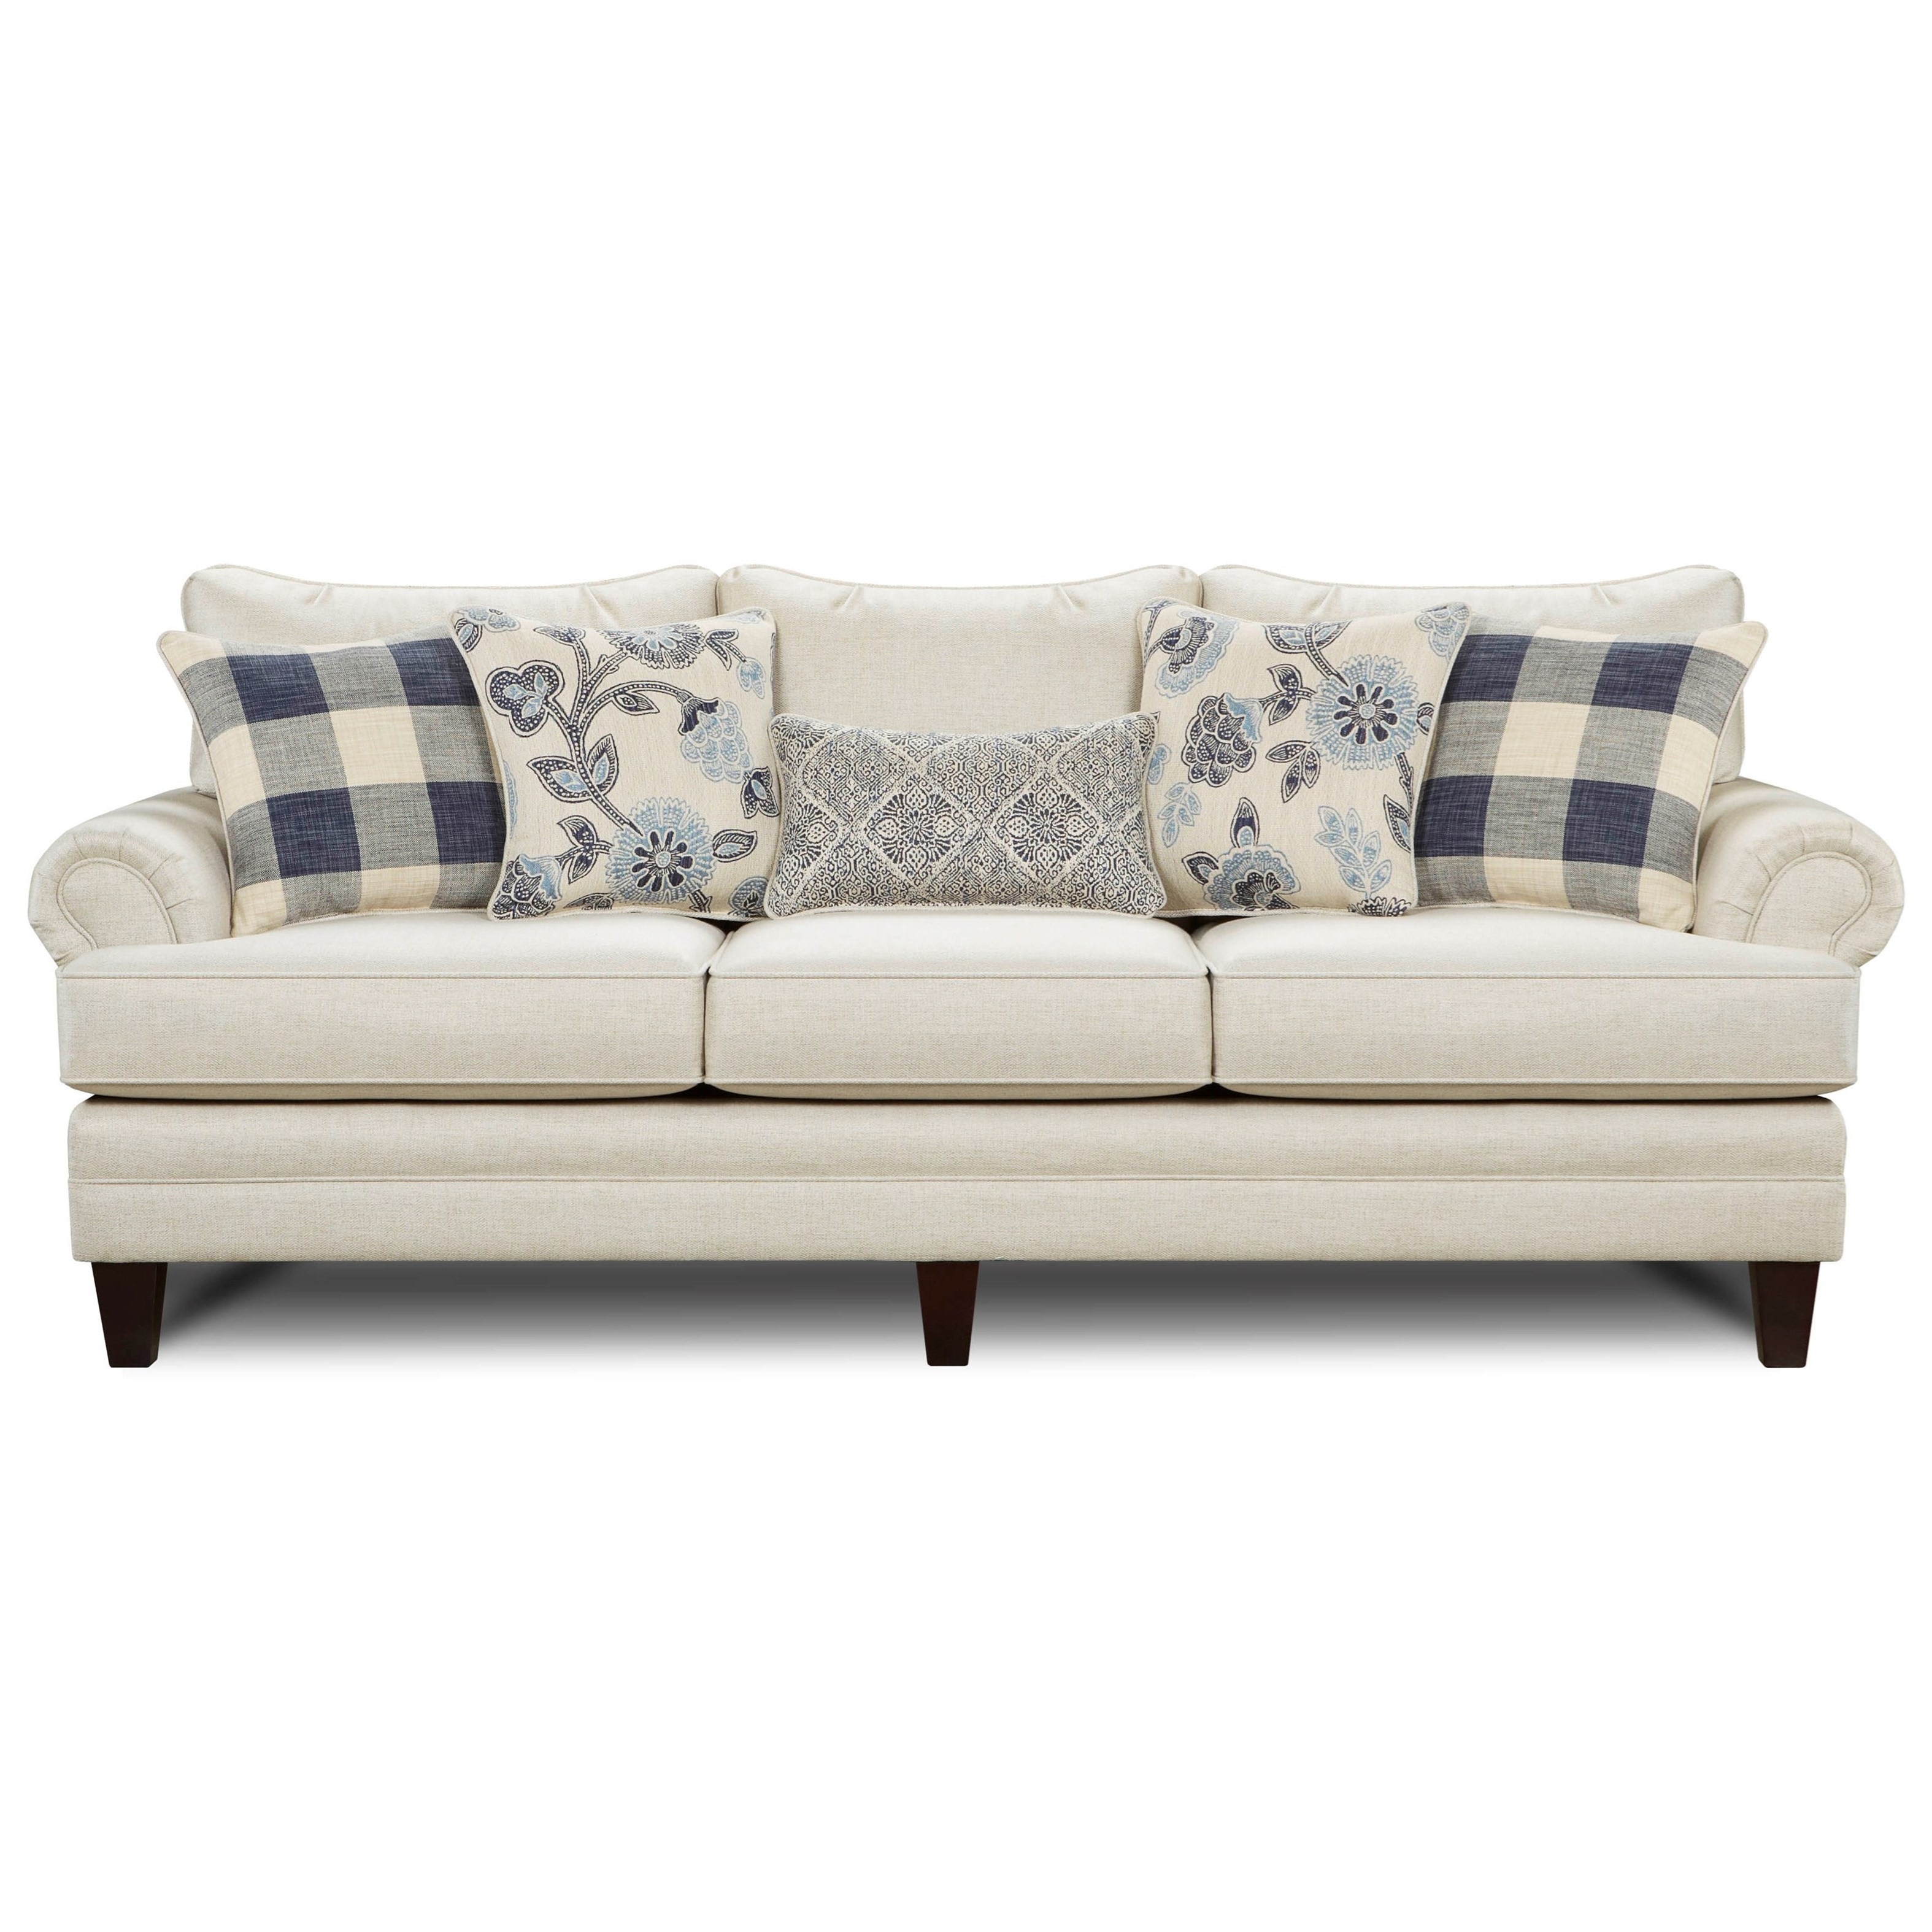 2810 Sofa by Fusion Furniture at Prime Brothers Furniture